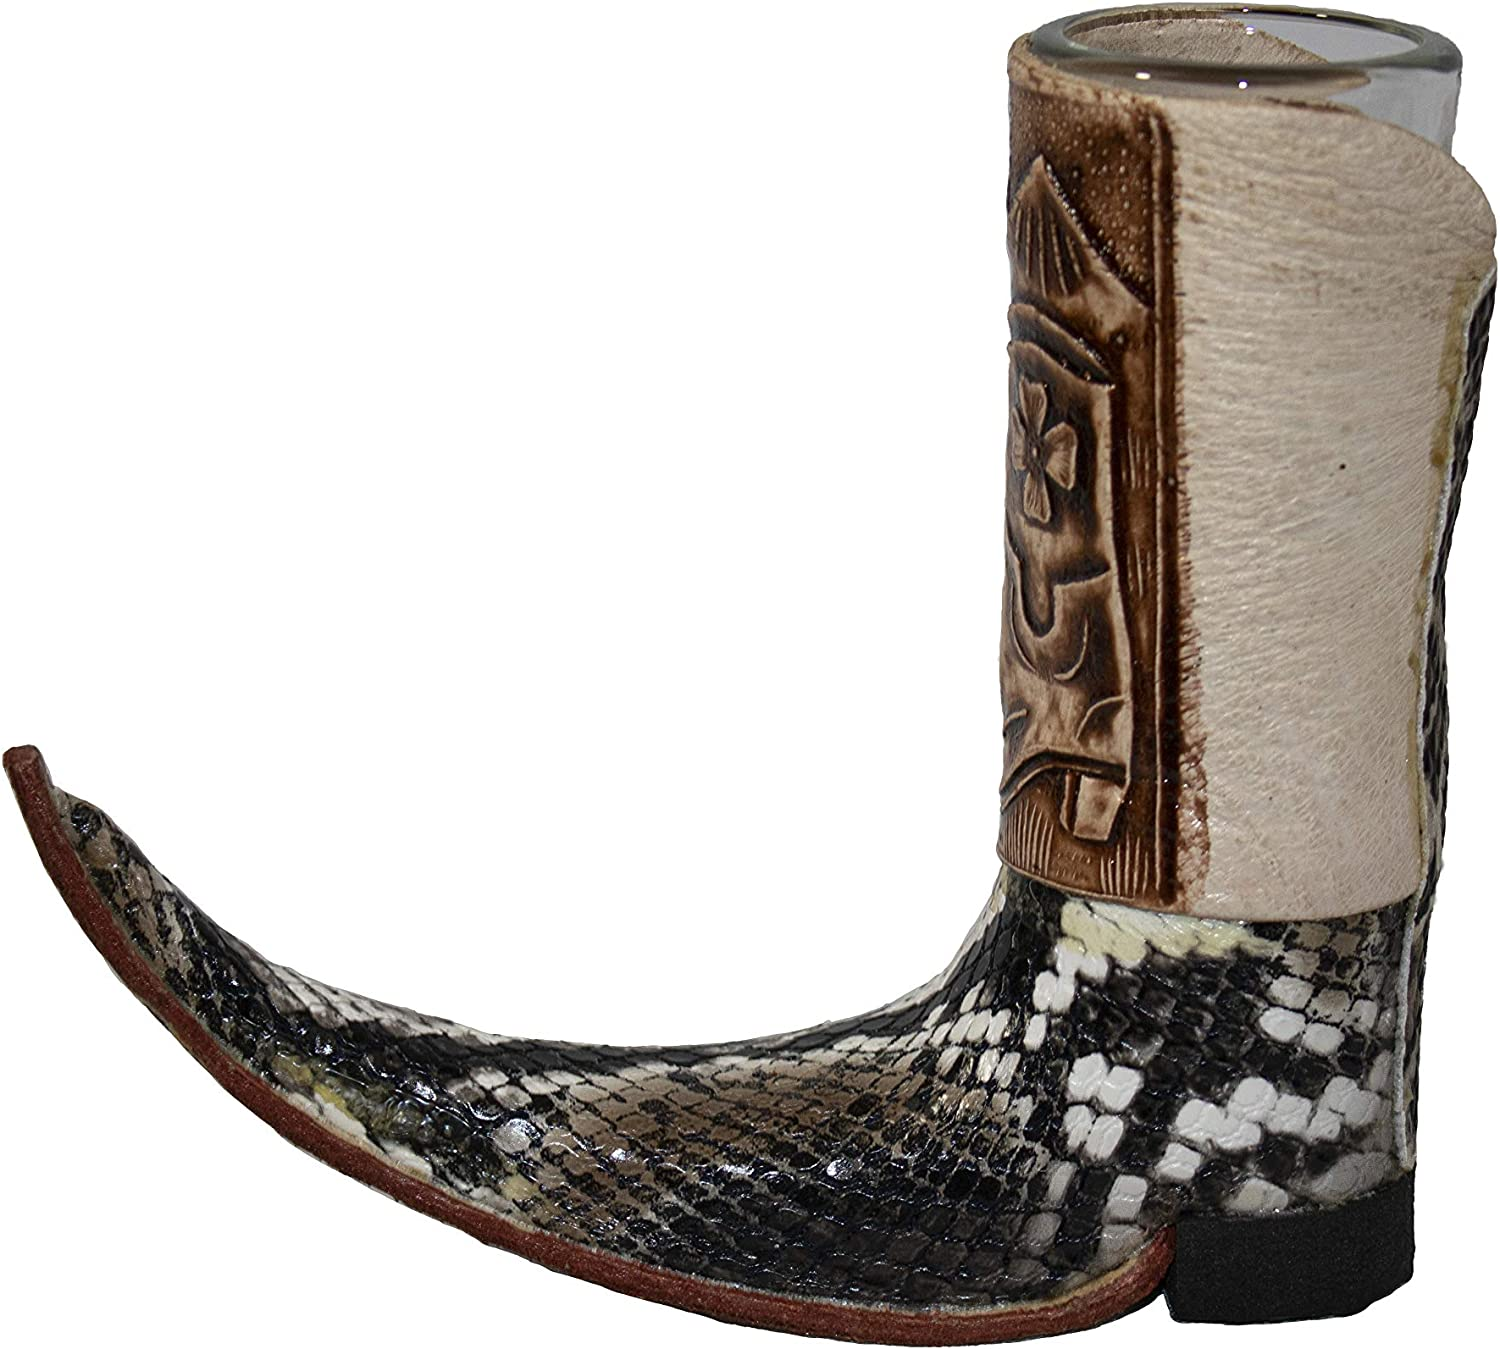 El Mexicanito Mexican Boot Shot Max 87% OFF Glass Mini Leather Max 60% OFF Tequila